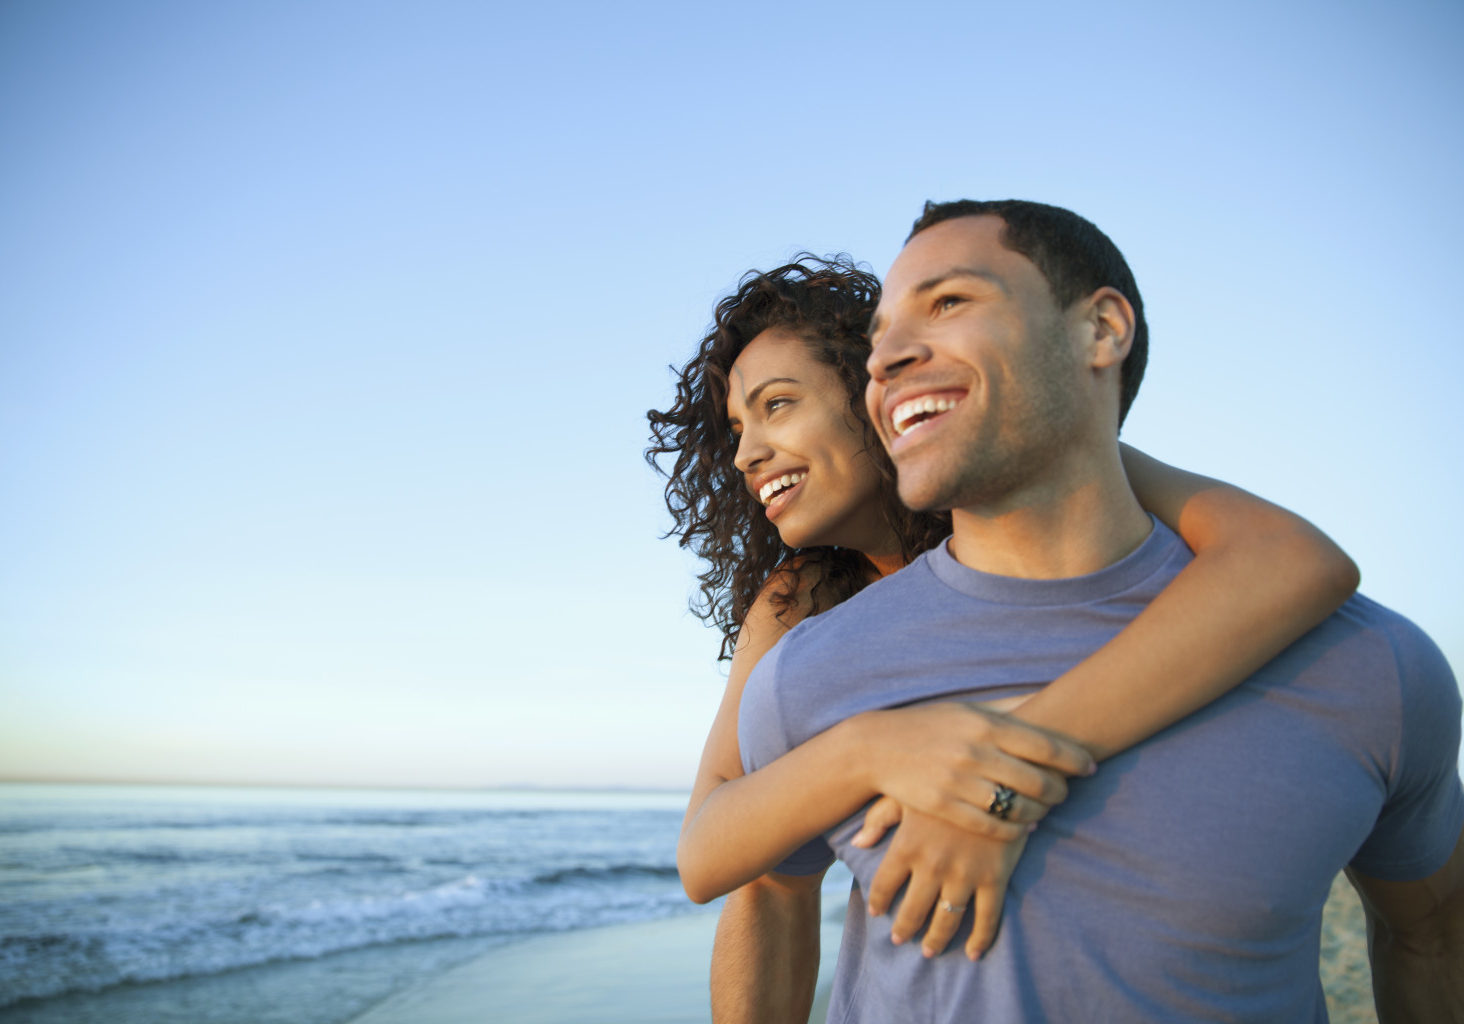 Happy young man giving piggyback ride to woman while looking away at beach